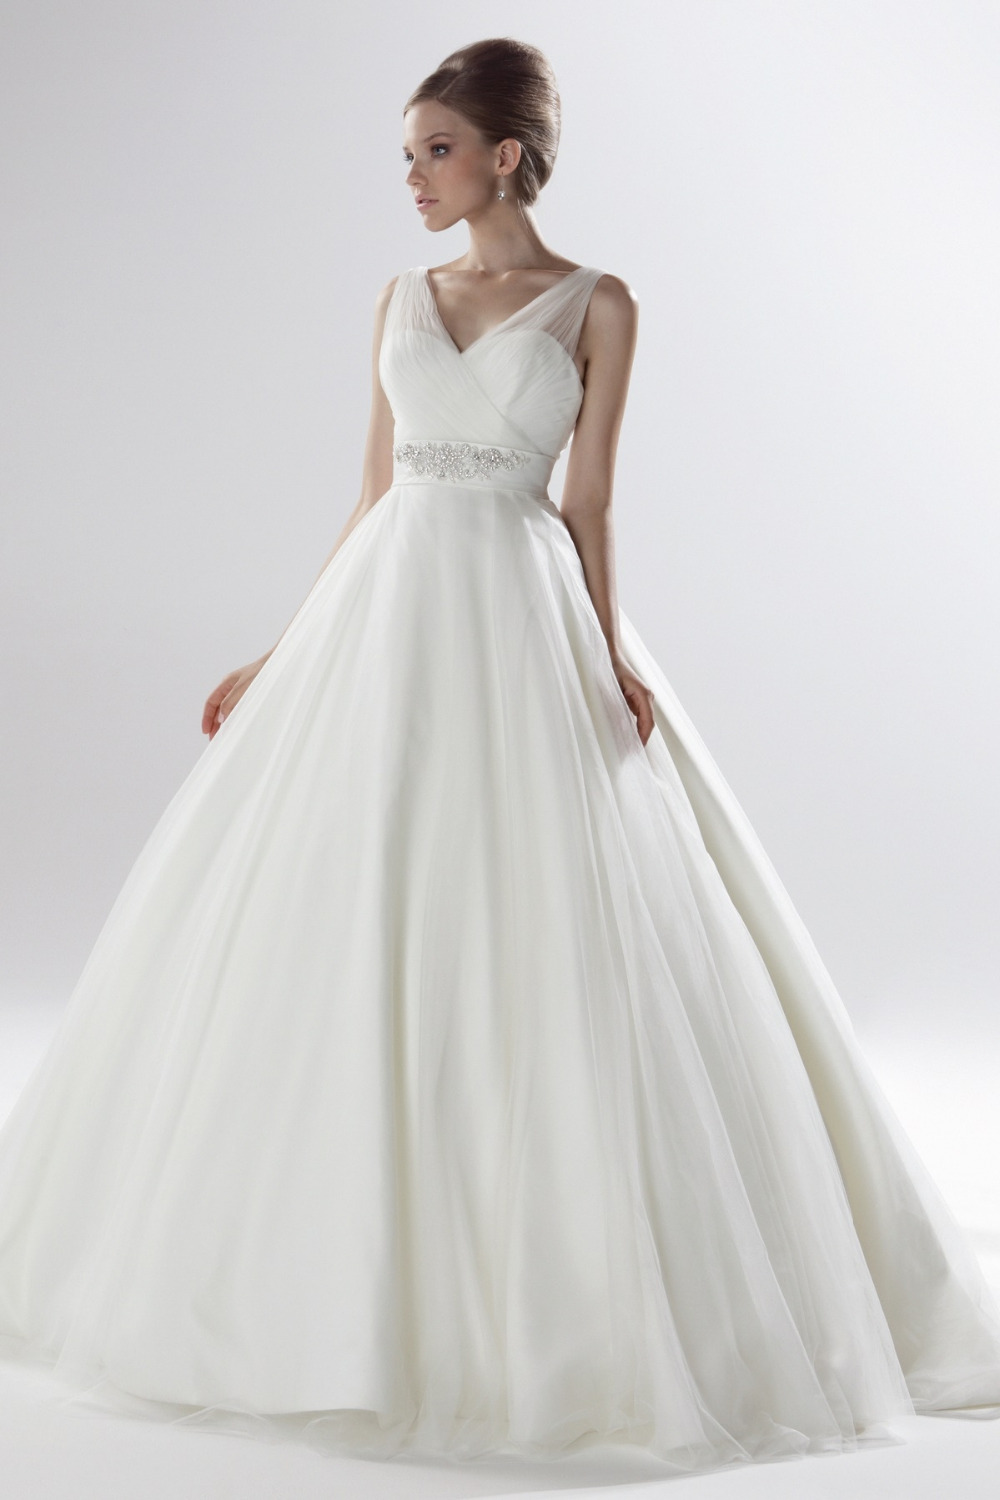 Calvin Klein Ball Gown Wedding Dresses | Dress images